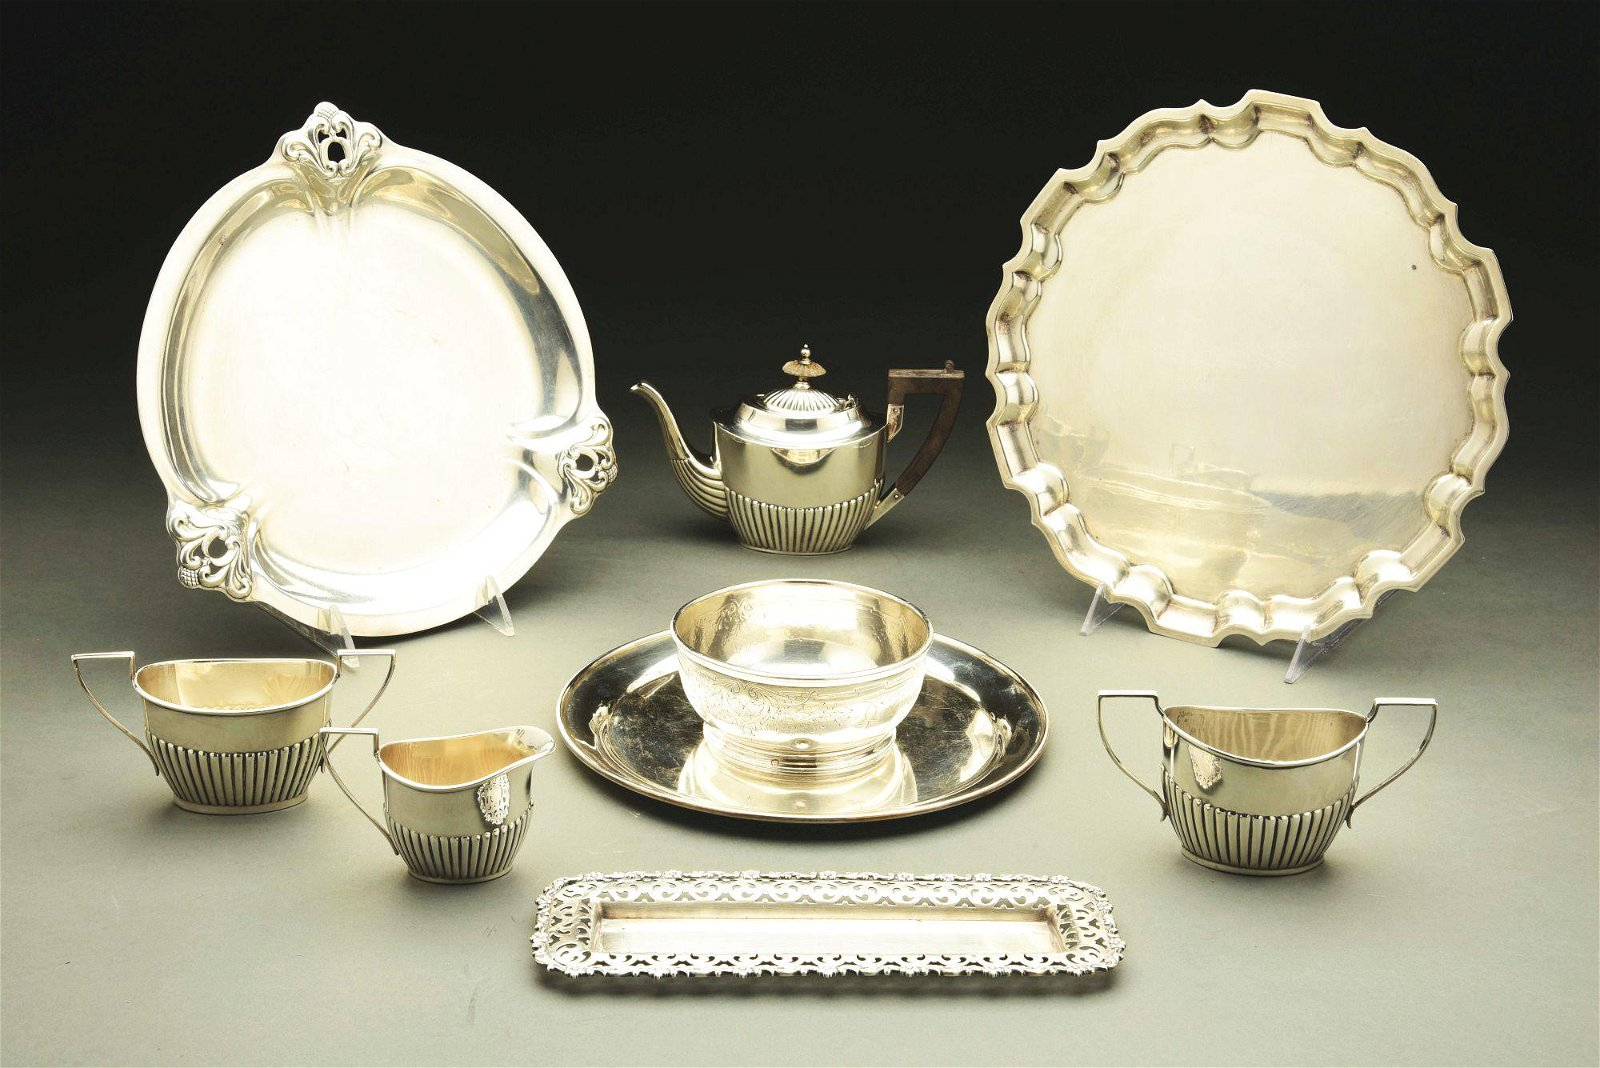 A GROUP OF AMERICAN STERLING TABLE WARES.